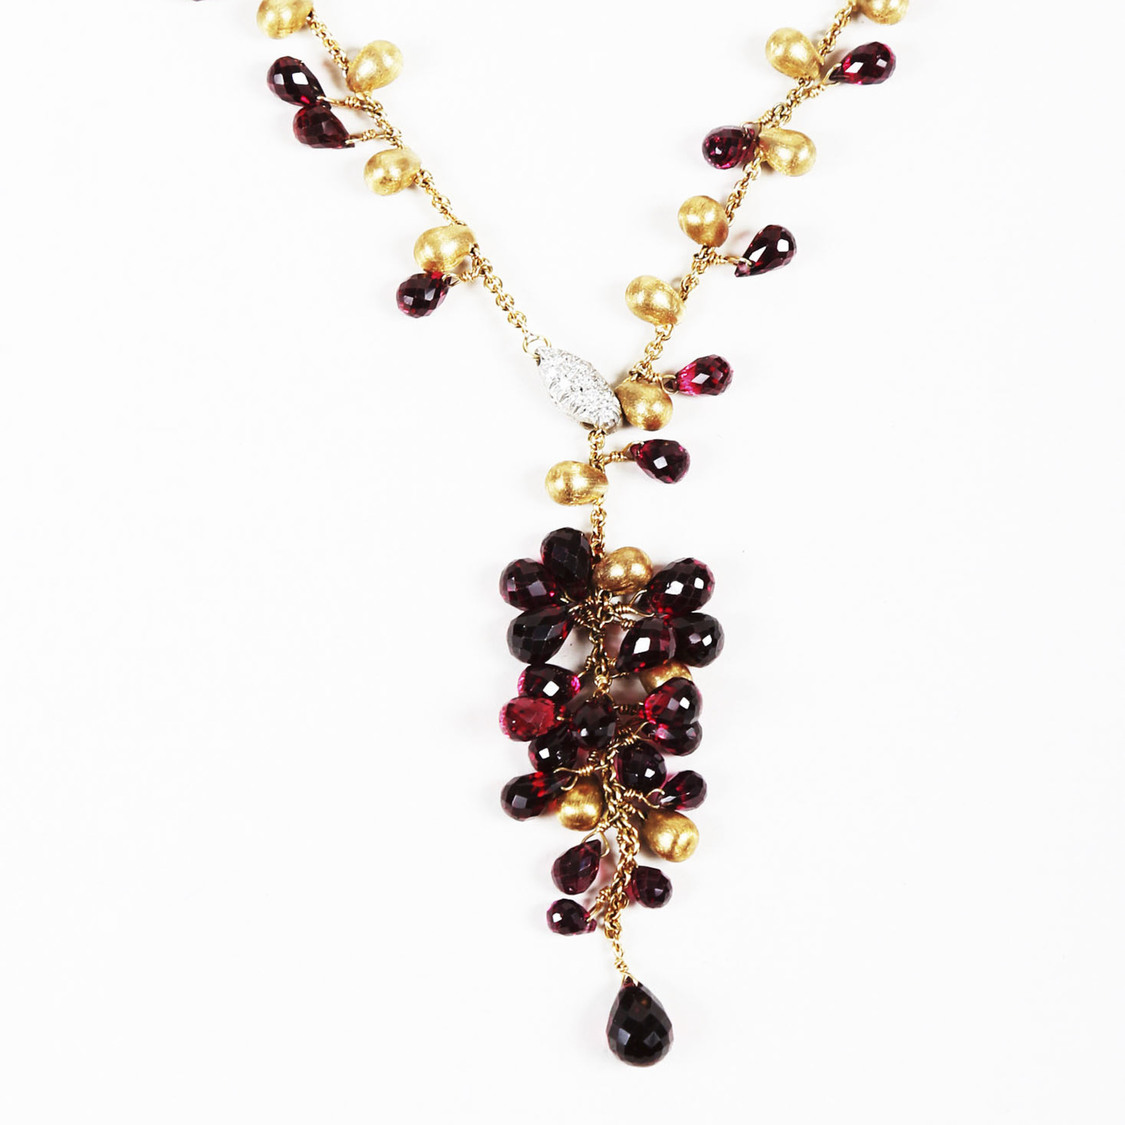 ea0ffad864d6a Details about Marco Bicego Red Garnet Diamond & 18k Yellow Gold